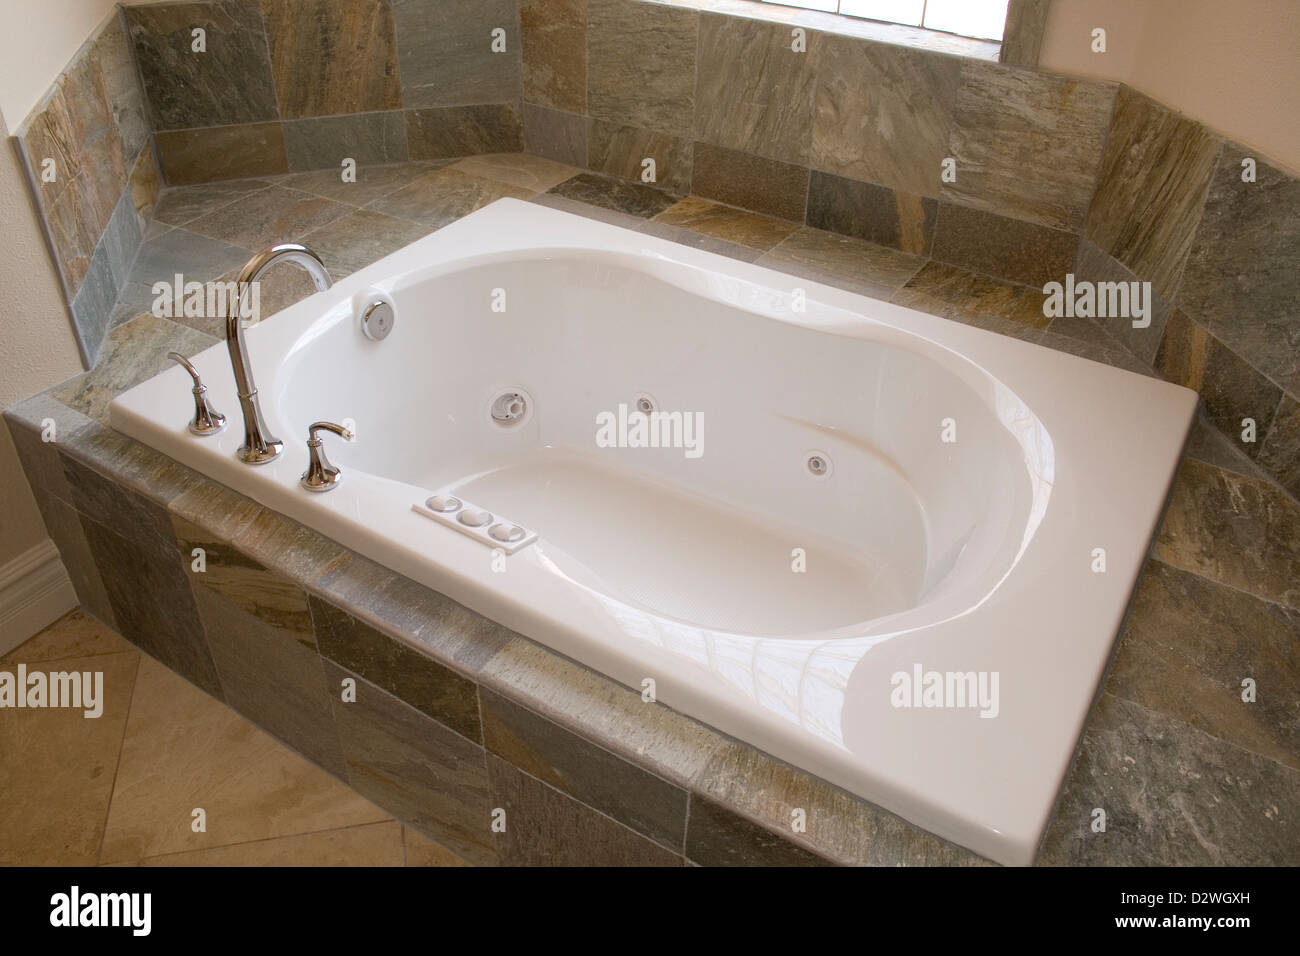 Whirlpool Jetted Tub Stock Photos & Whirlpool Jetted Tub Stock ...